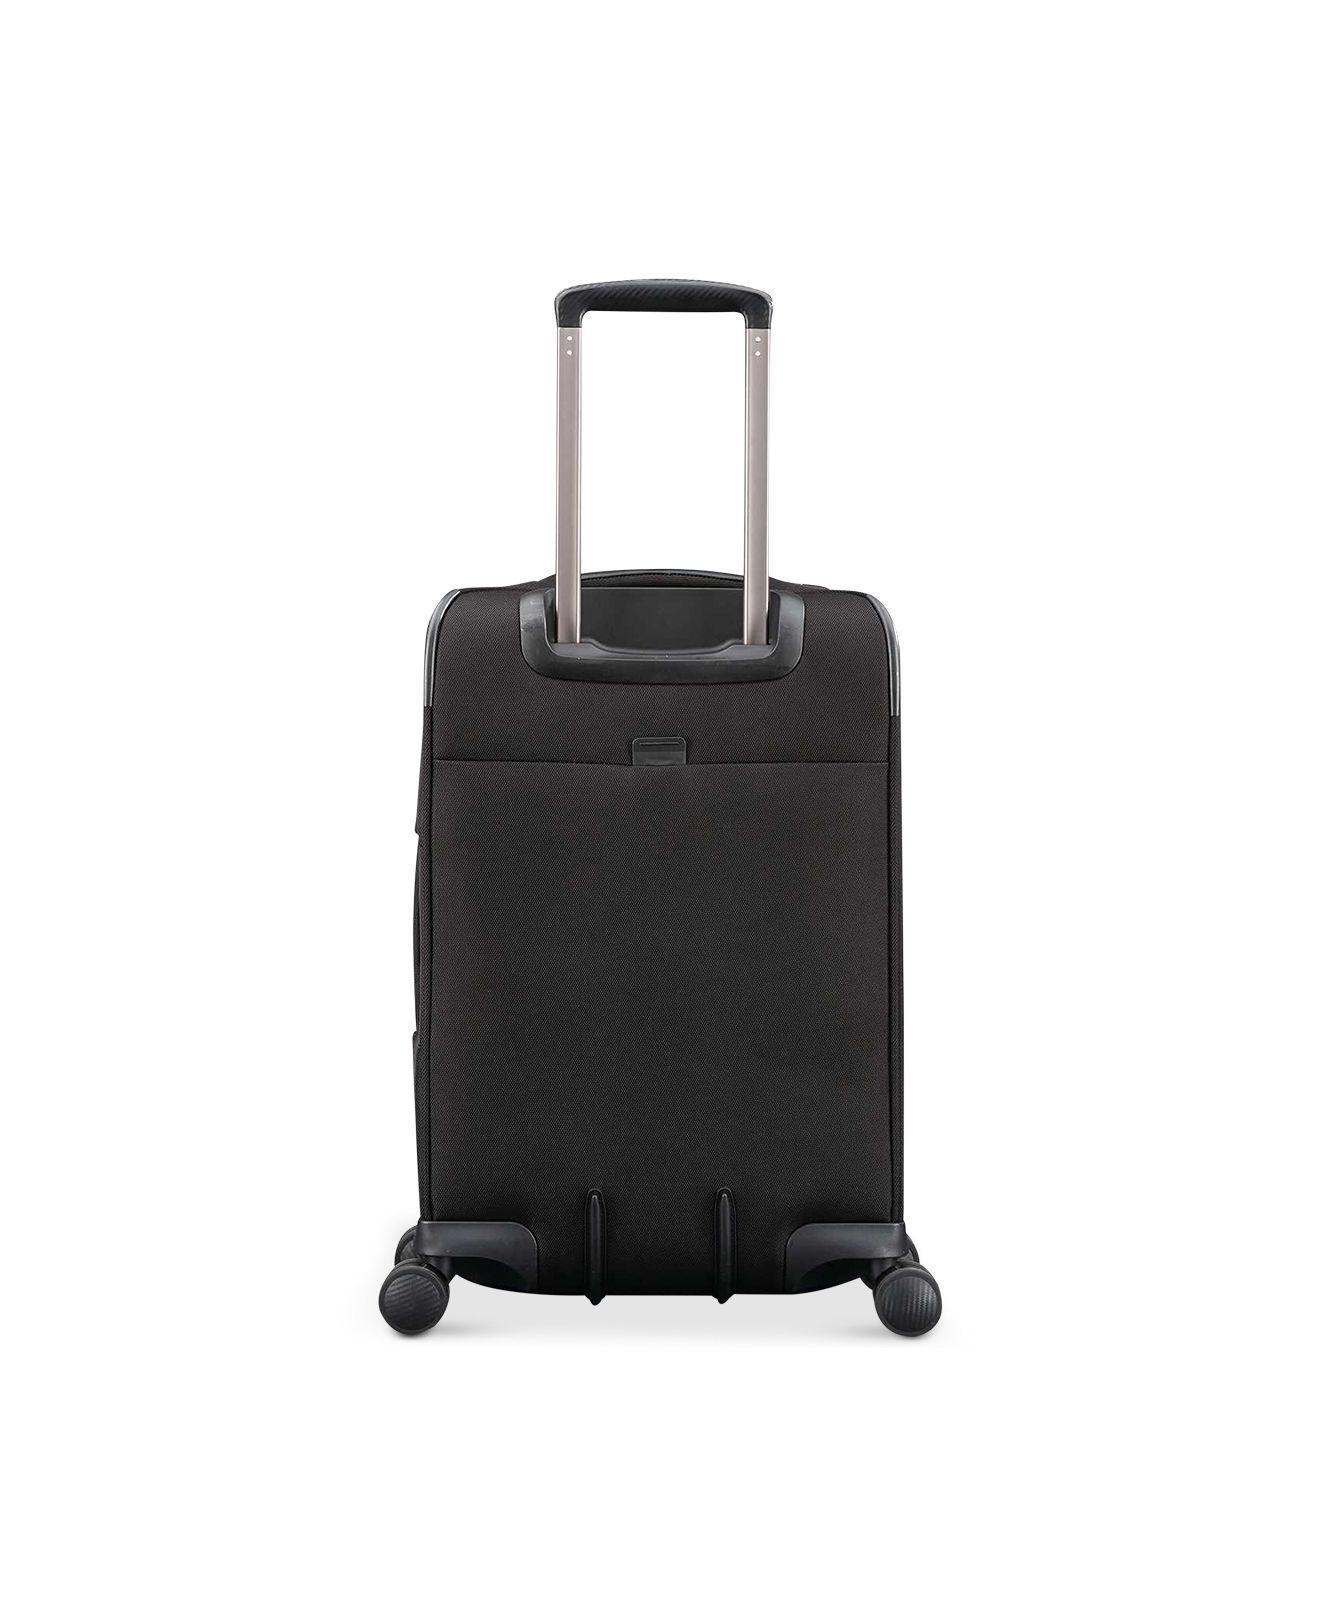 4e139027a8 Lyst - Hartmann Century Global Expandable Carry-on Spinner Suitcase in  Black for Men - Save 21.875%